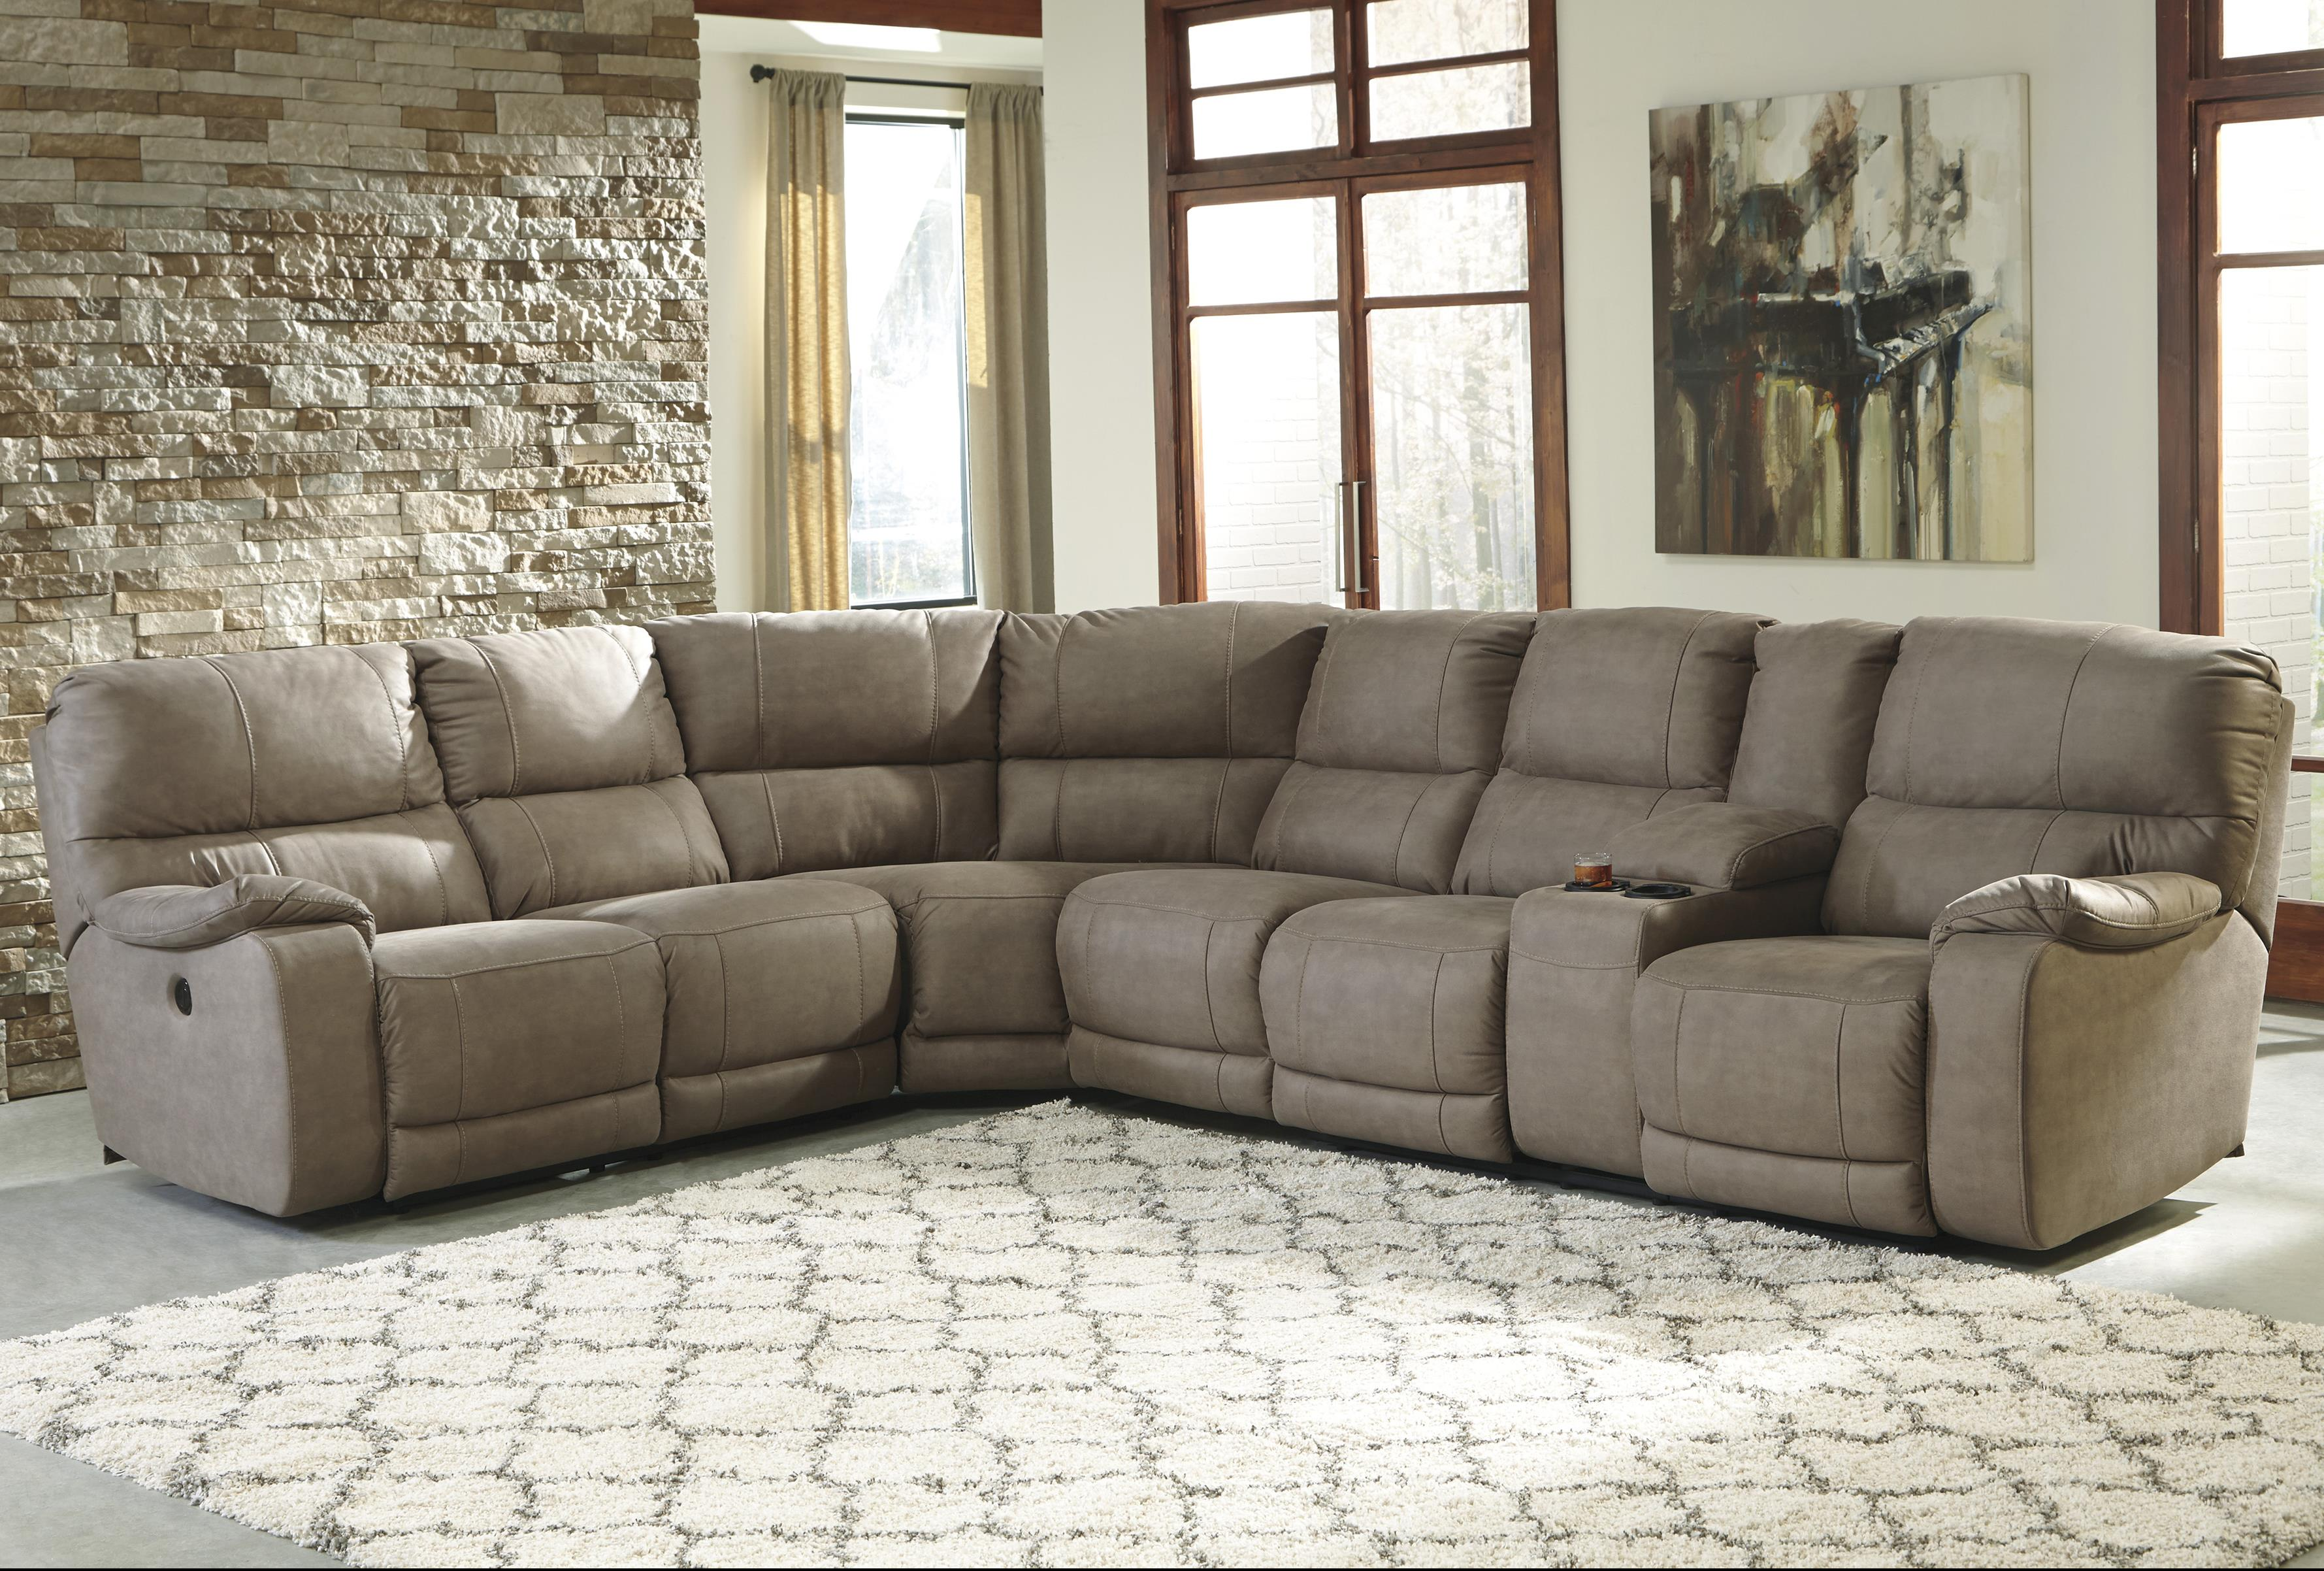 Benchcraft Bohannon Power Reclining Sectional with Console - Item Number: 5740363+77+46+90